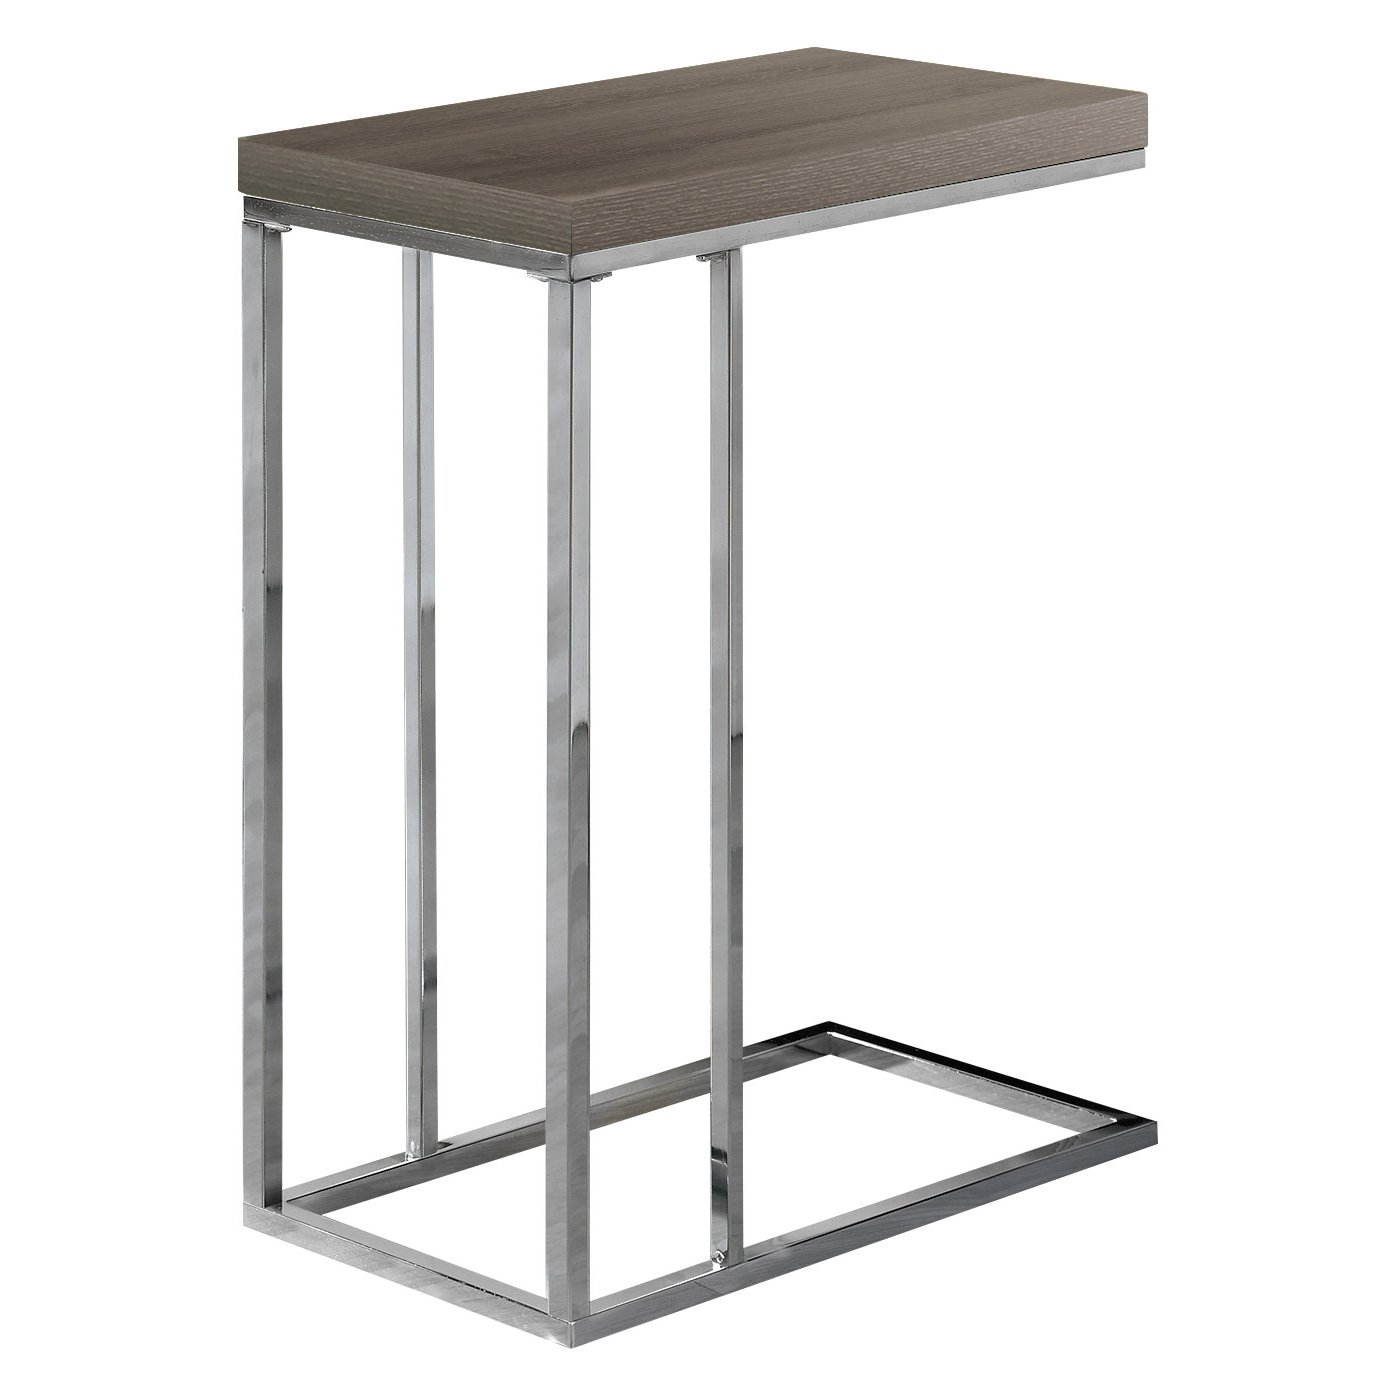 monarch specialties accent table chrome metal drink dark taupe kitchen dining target coffee with storage barn nightstand lamp attached outdoor bunnings mapex drum stool canvas